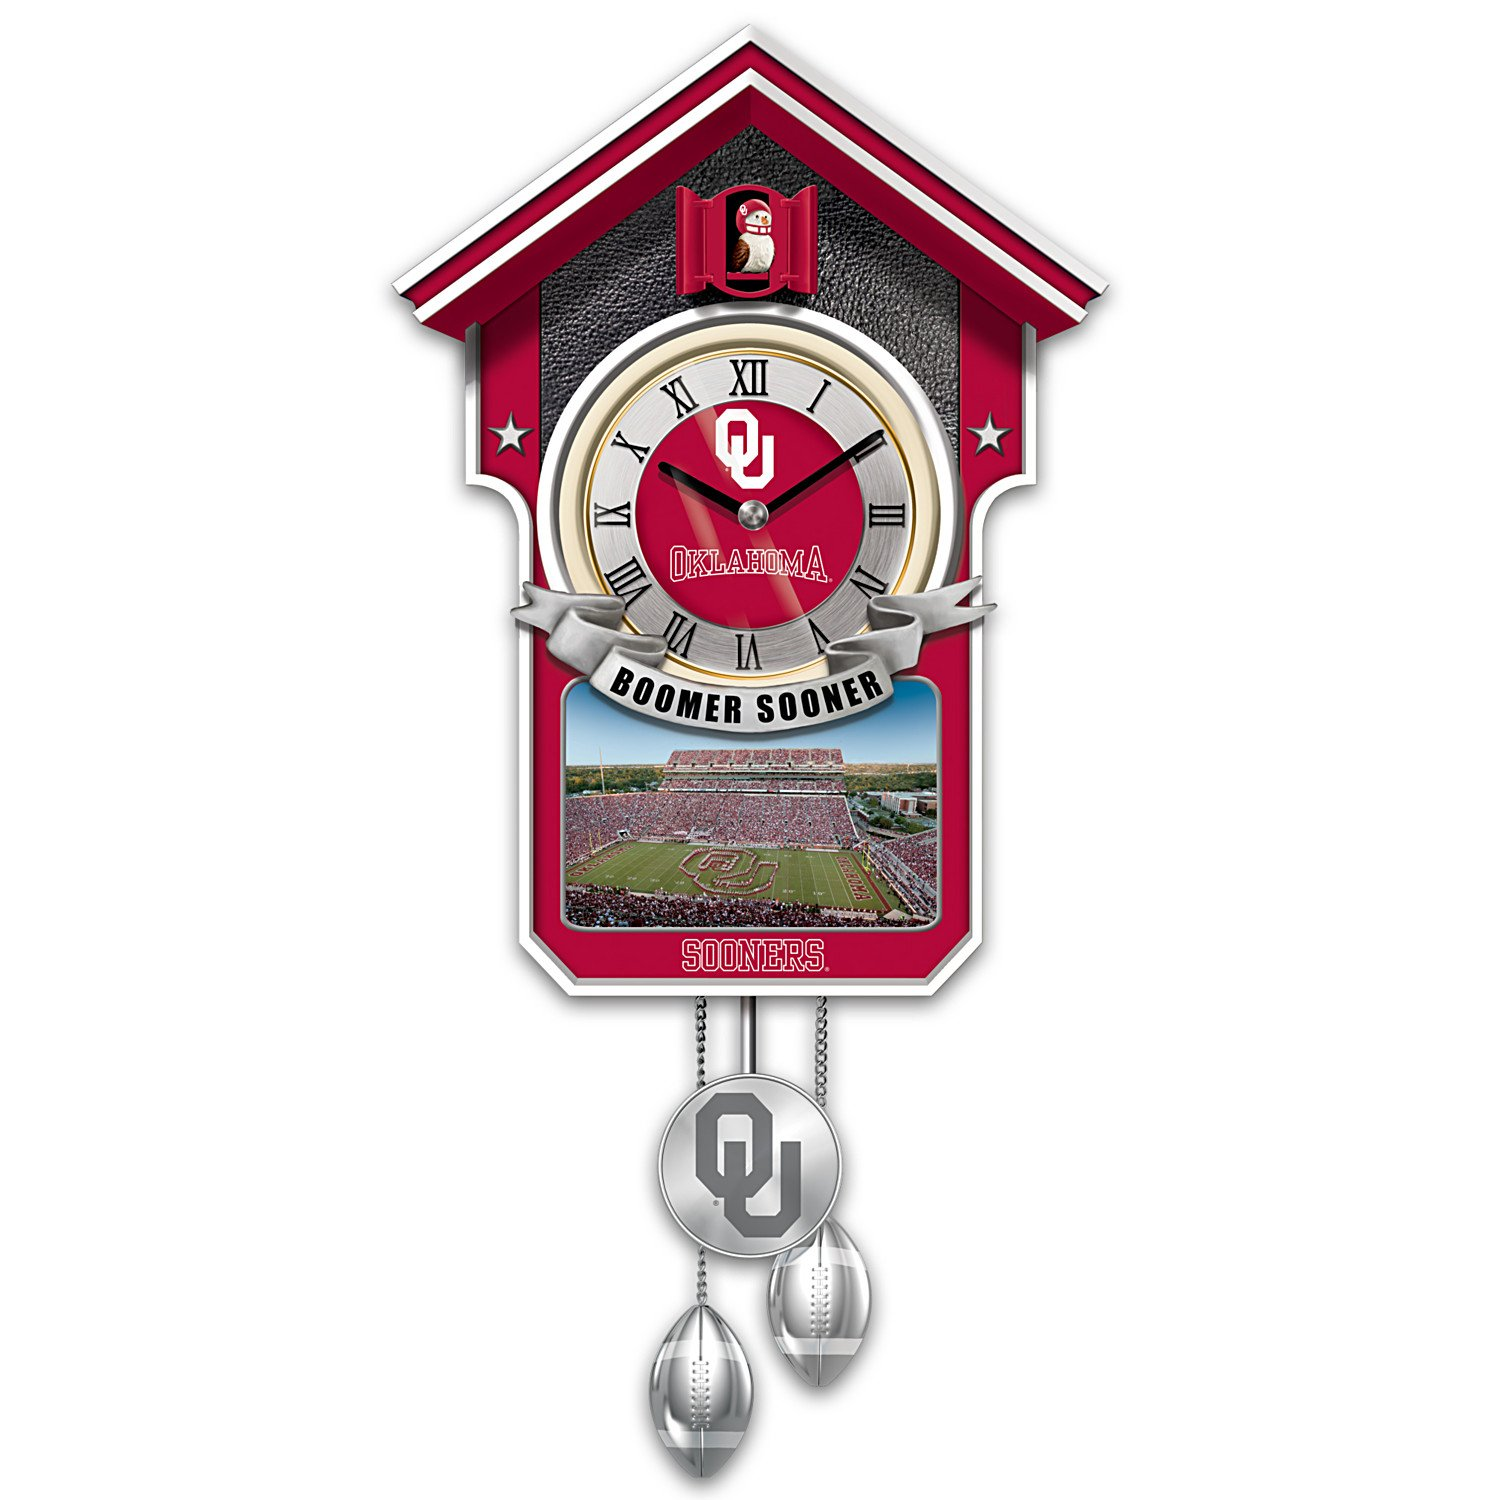 University Of Oklahoma Sooners College Football Cuckoo Clock: Bradford Exchange by The Bradford Exchange